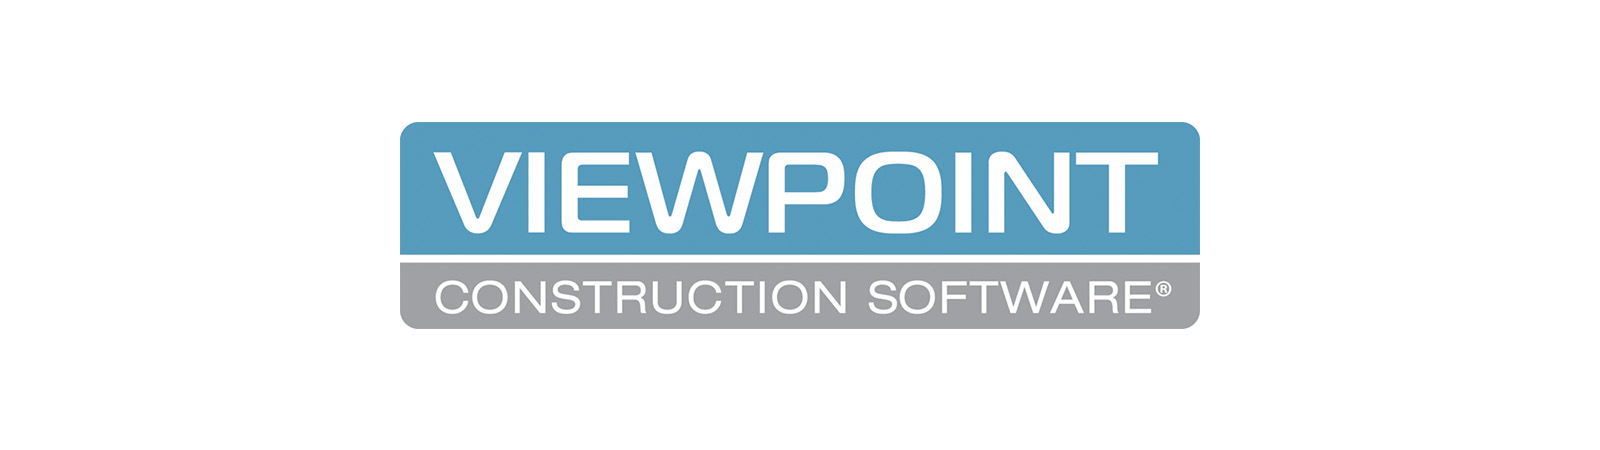 Viewpoint, Inc. Logo Image